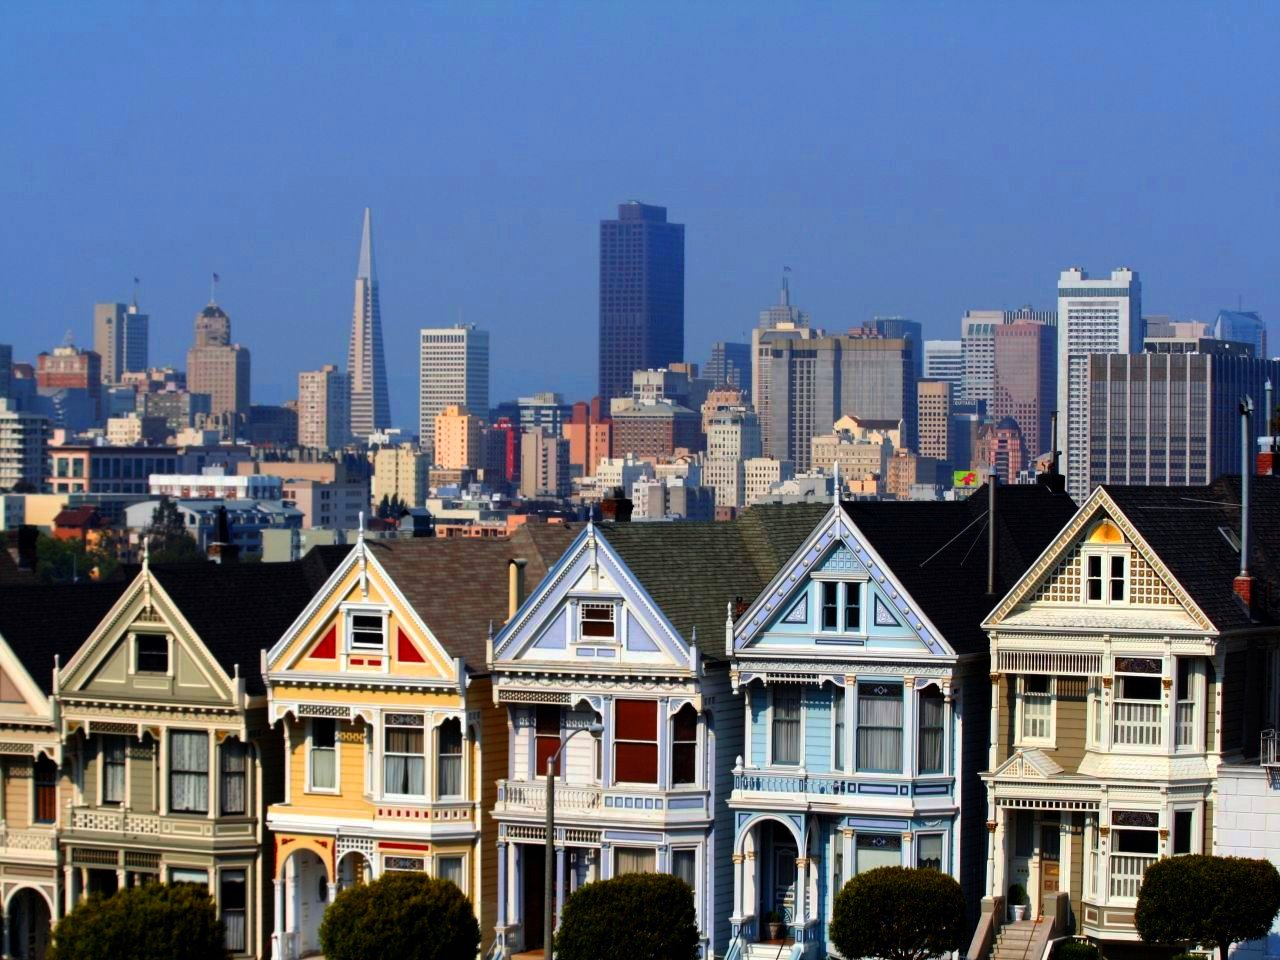 Leave Your Heart In Lovely San Francisco